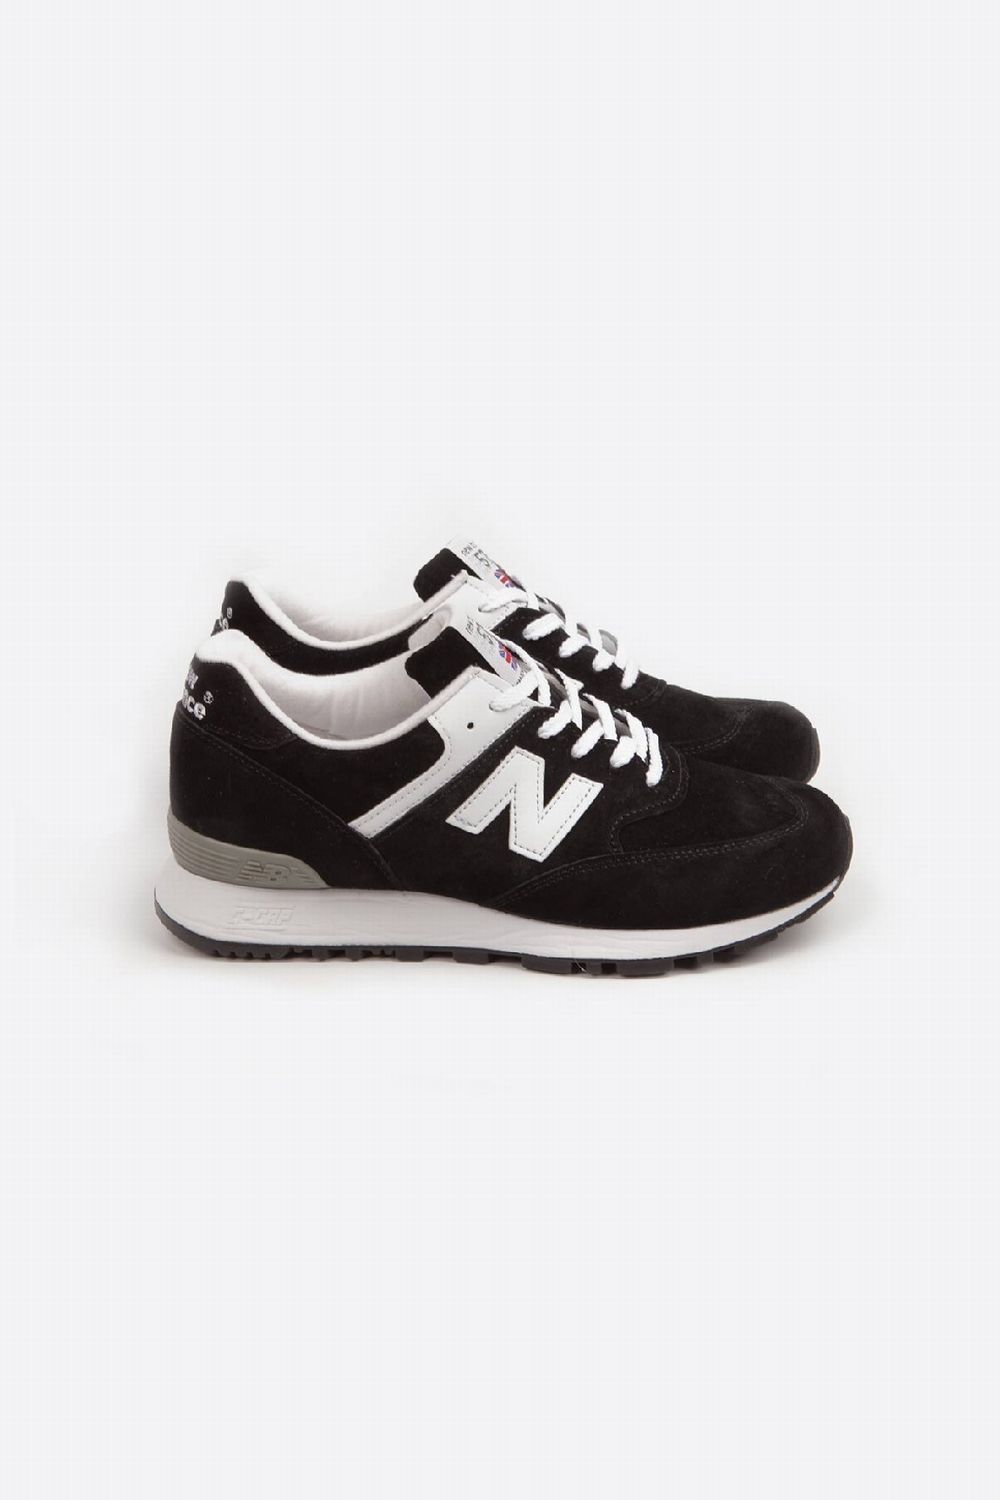 Balance 576 New Commercial Centre Footwear Femme Zn0cFqRdc